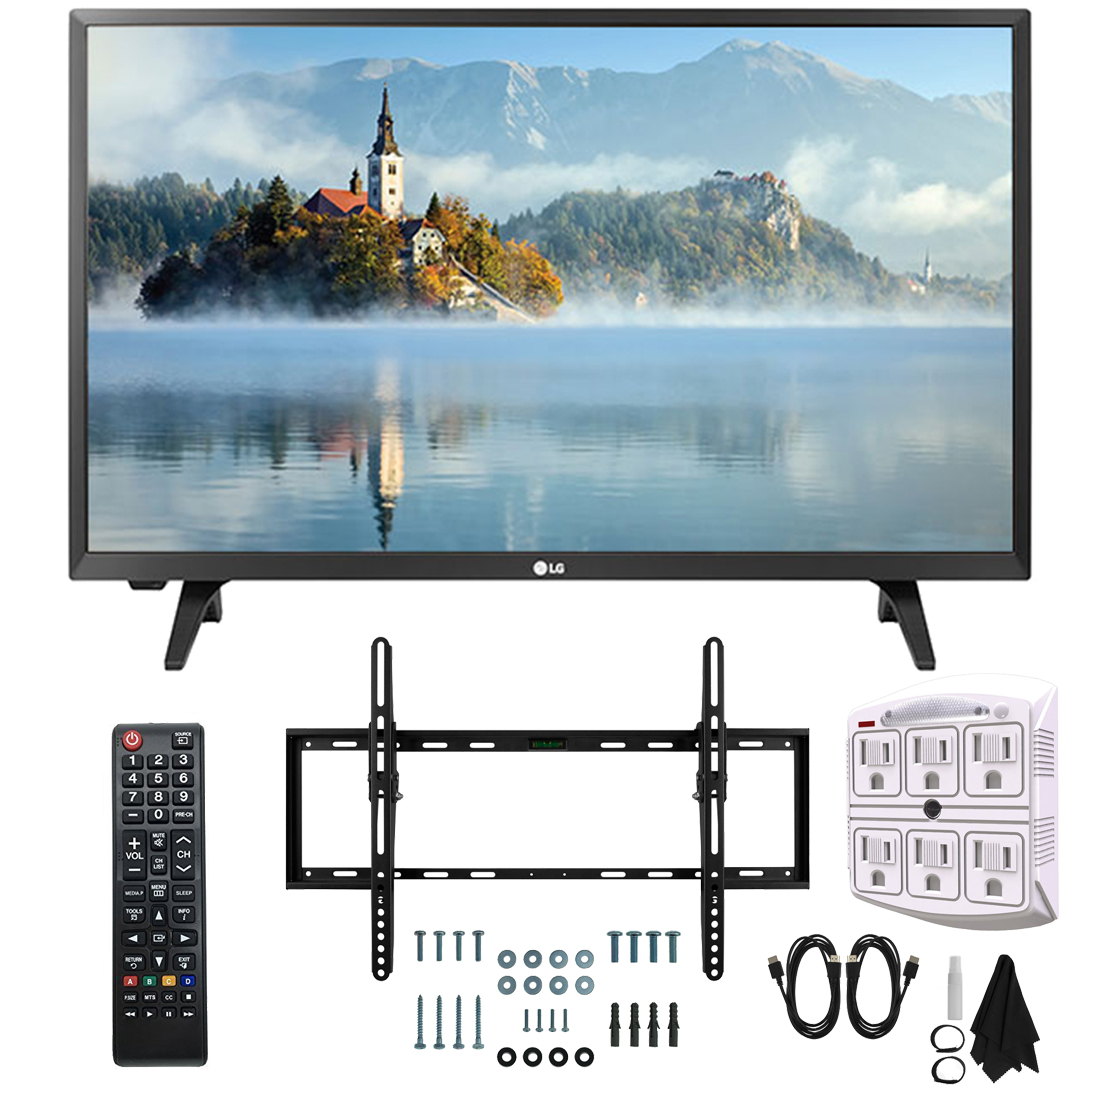 "LG 28LJ400B-PU 28"" Class HD 720p LED TV (2017 Model) with Slim Flat"